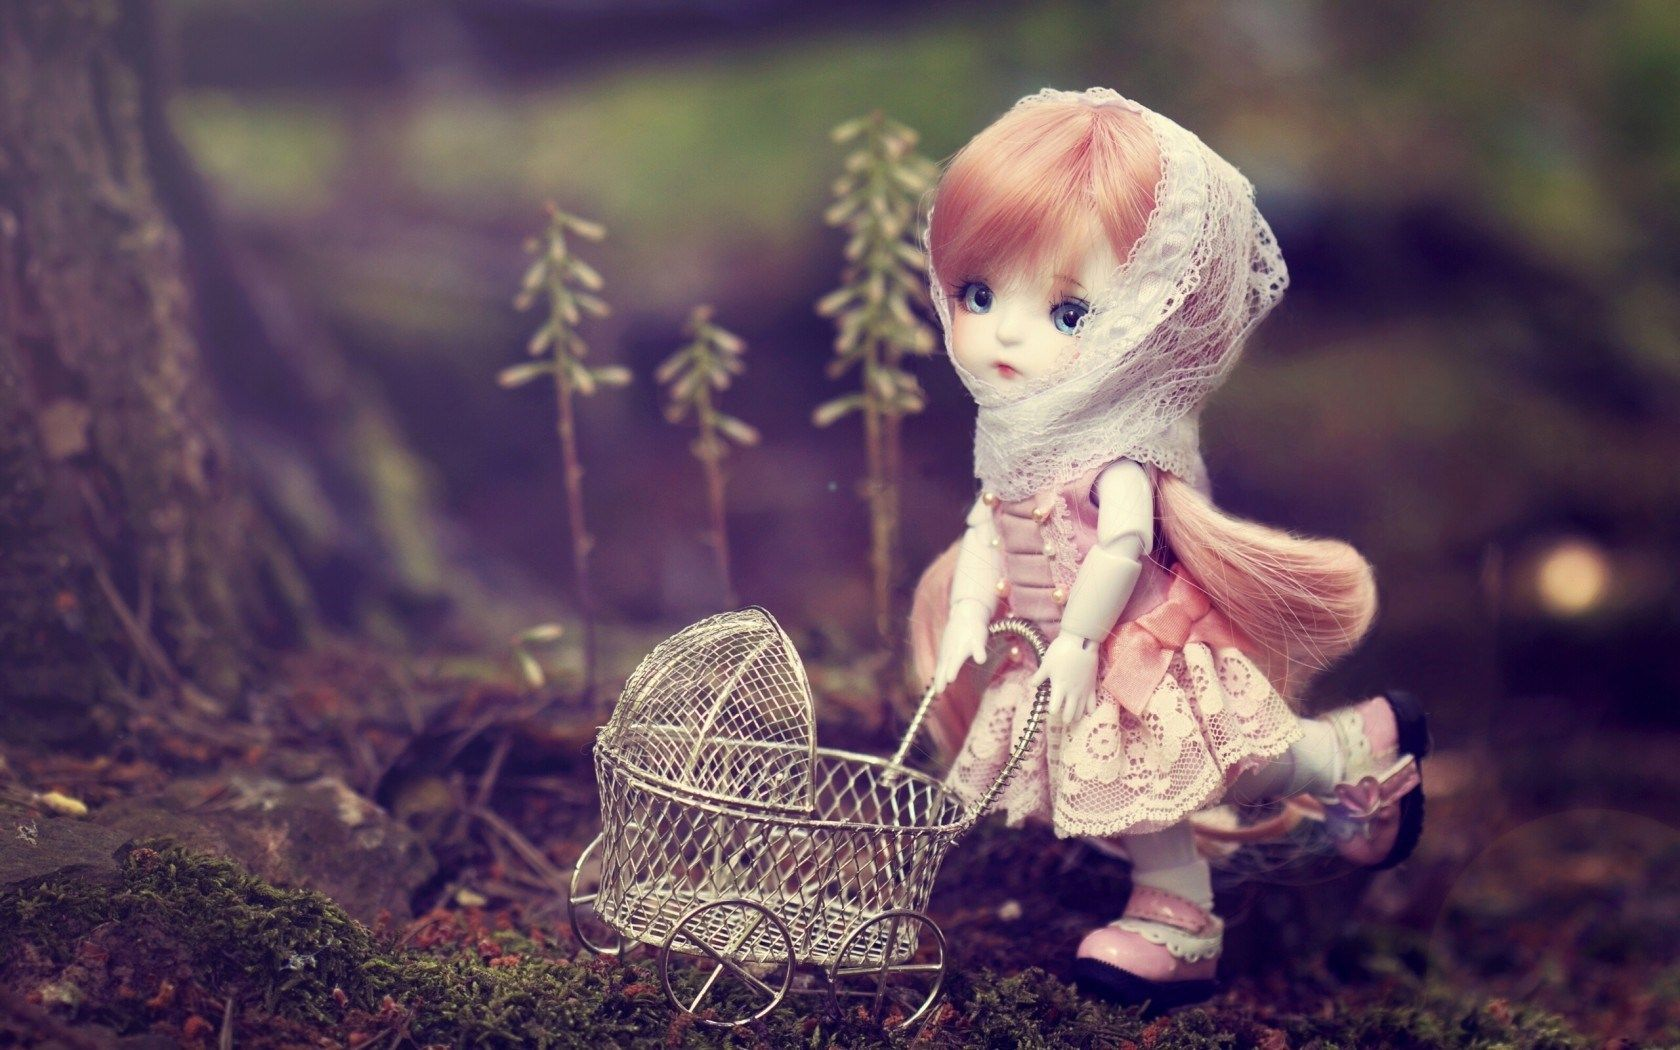 Cute hd wallpapers 001 adorable wallpapers cute hd wallpapers 001 voltagebd Gallery